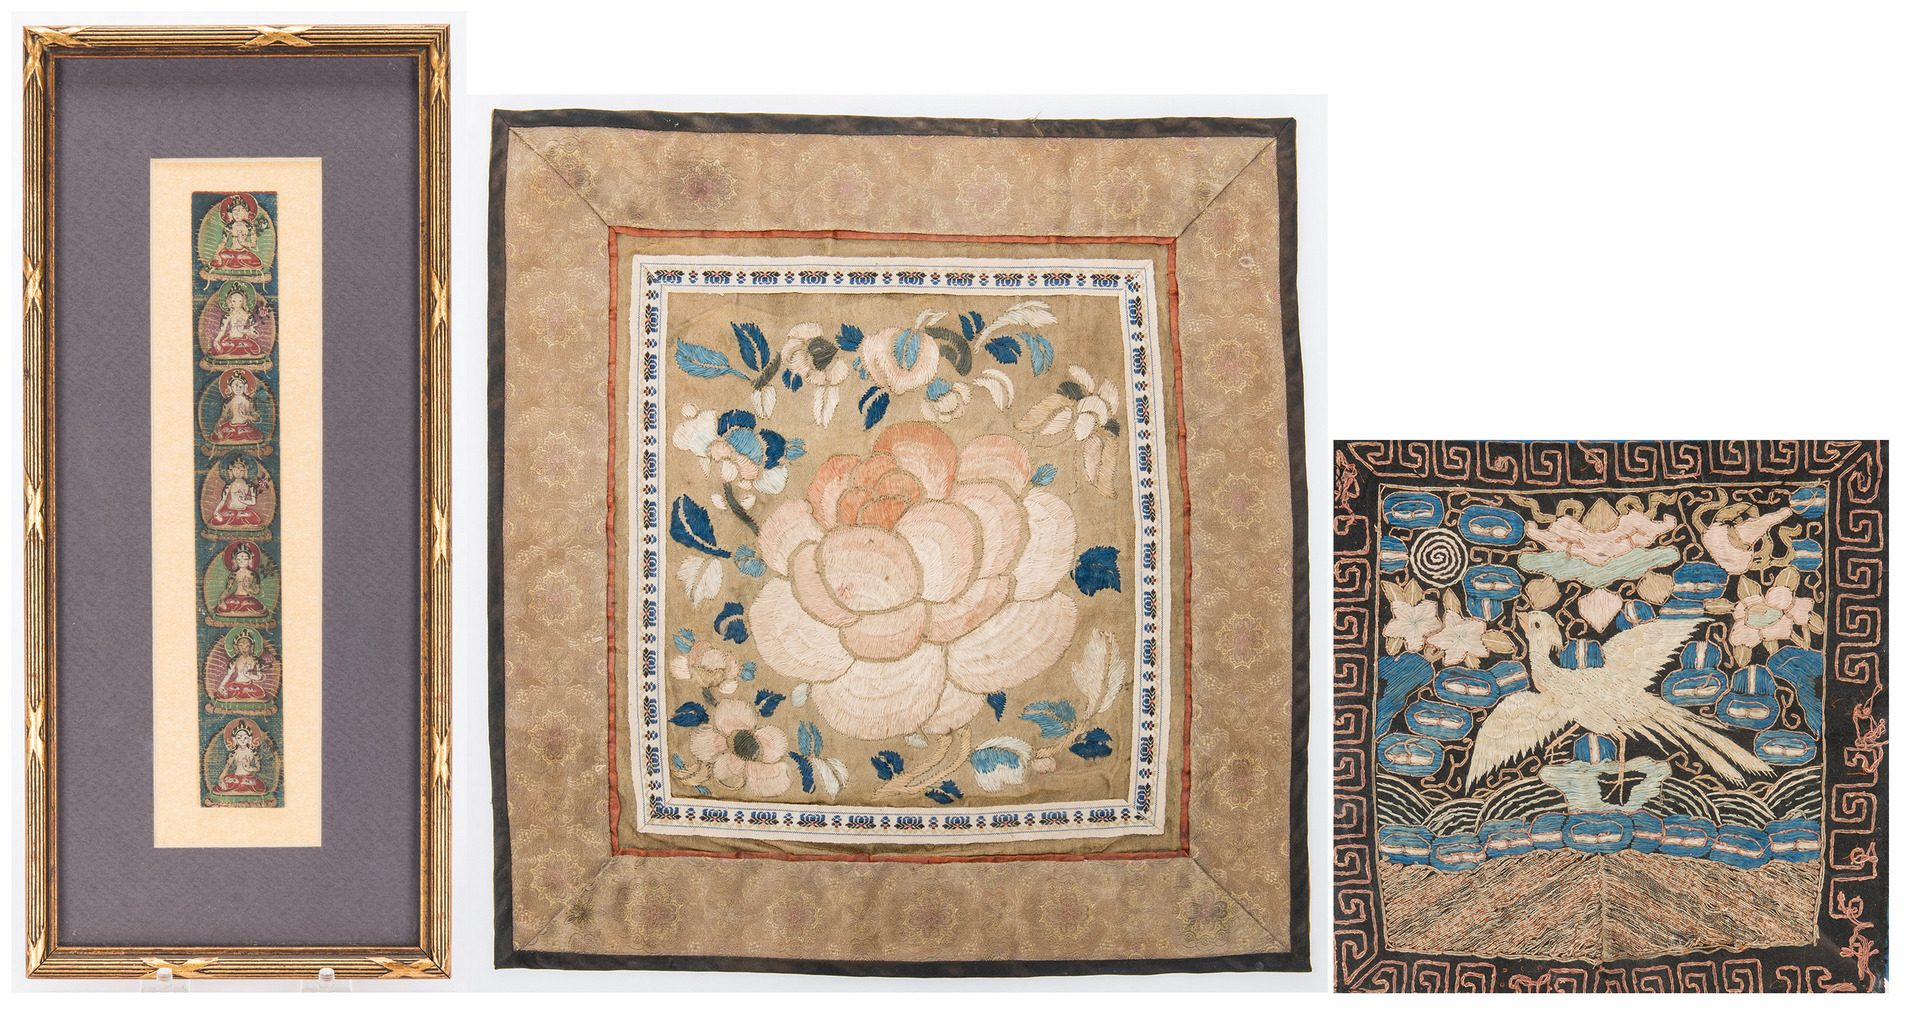 Lot 323: 2 Chinese Textiles & 1 Tibetan Thangka